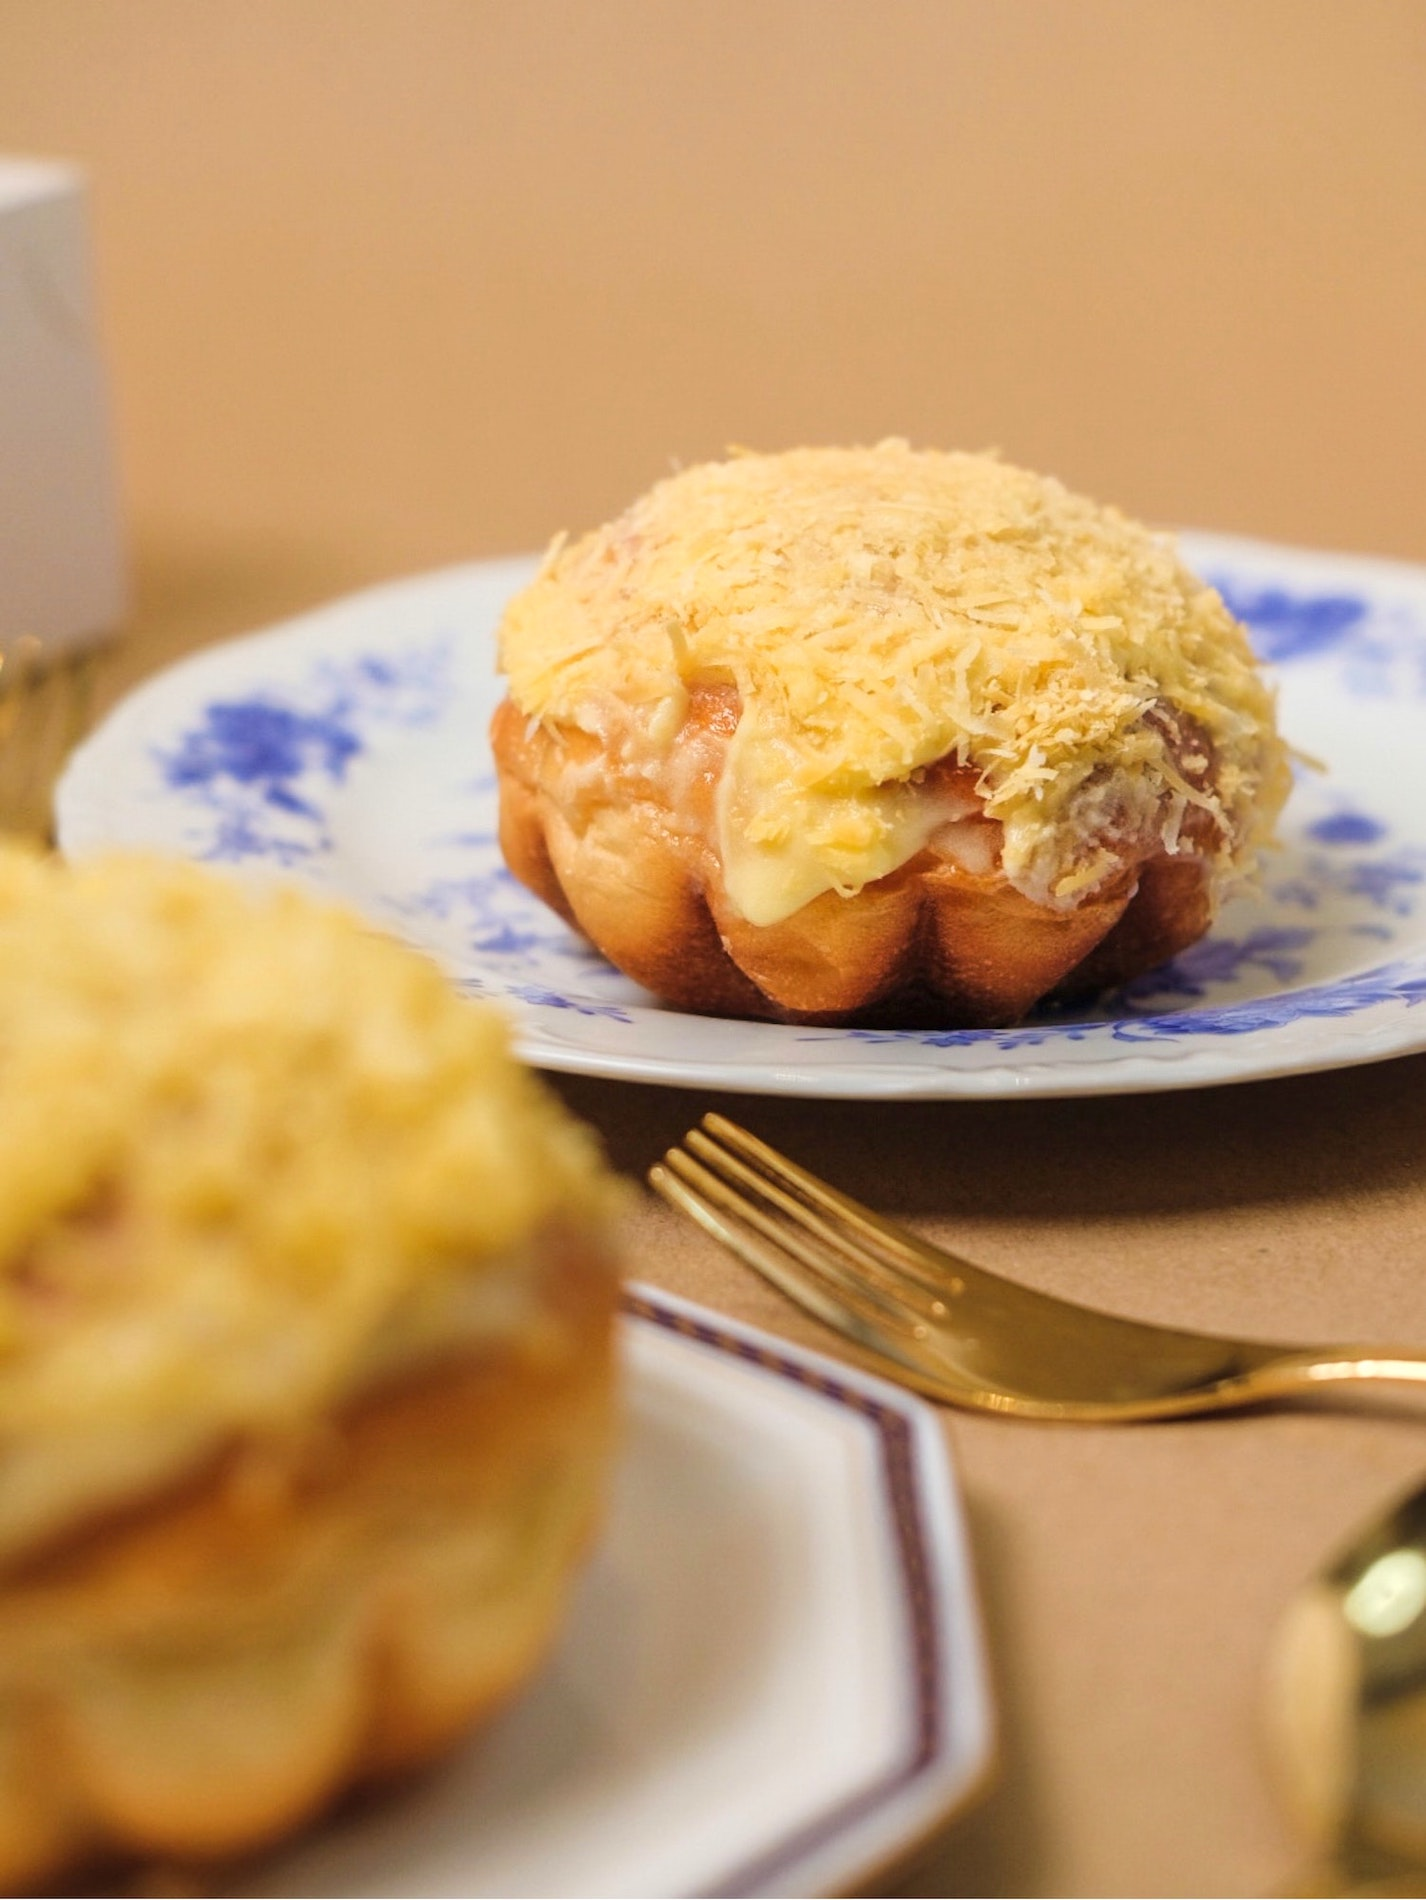 Ensaymada comes in many kinds, but all of them are basically enriched breads, akin to brioche